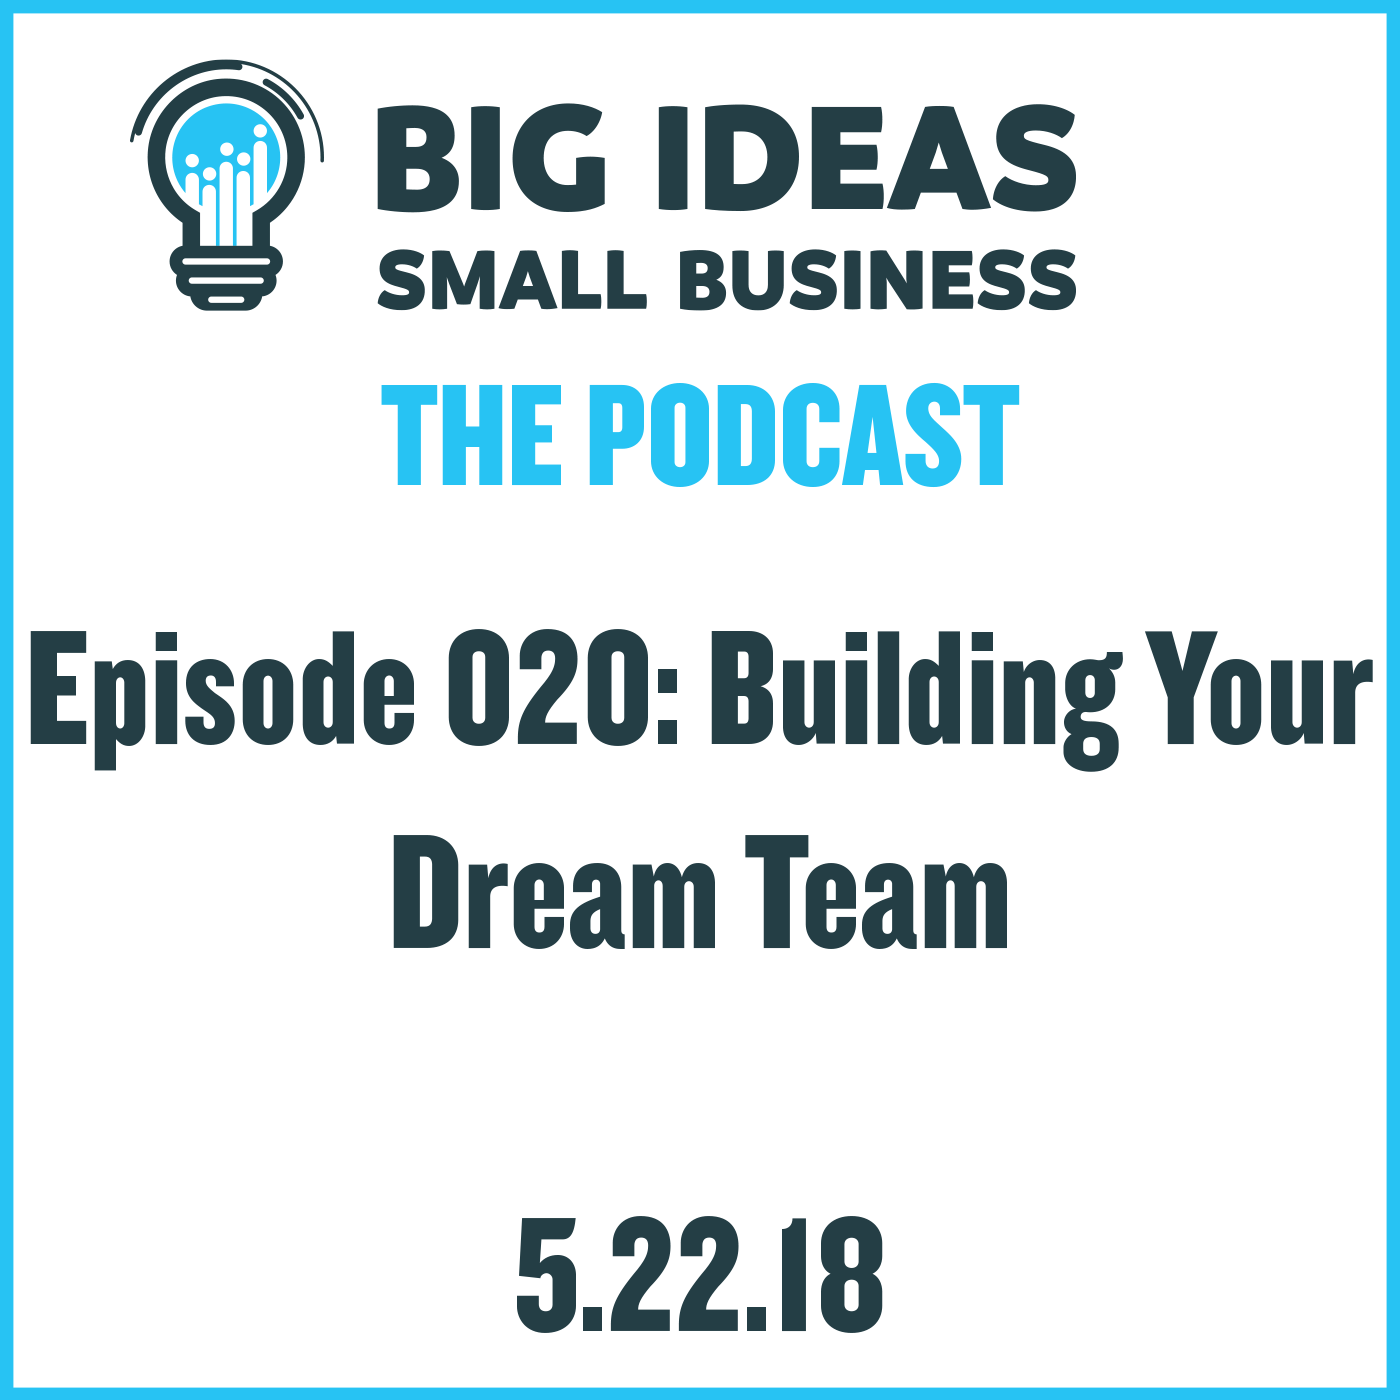 Building Your Dream Team – Big Ideas Small Business Podcast